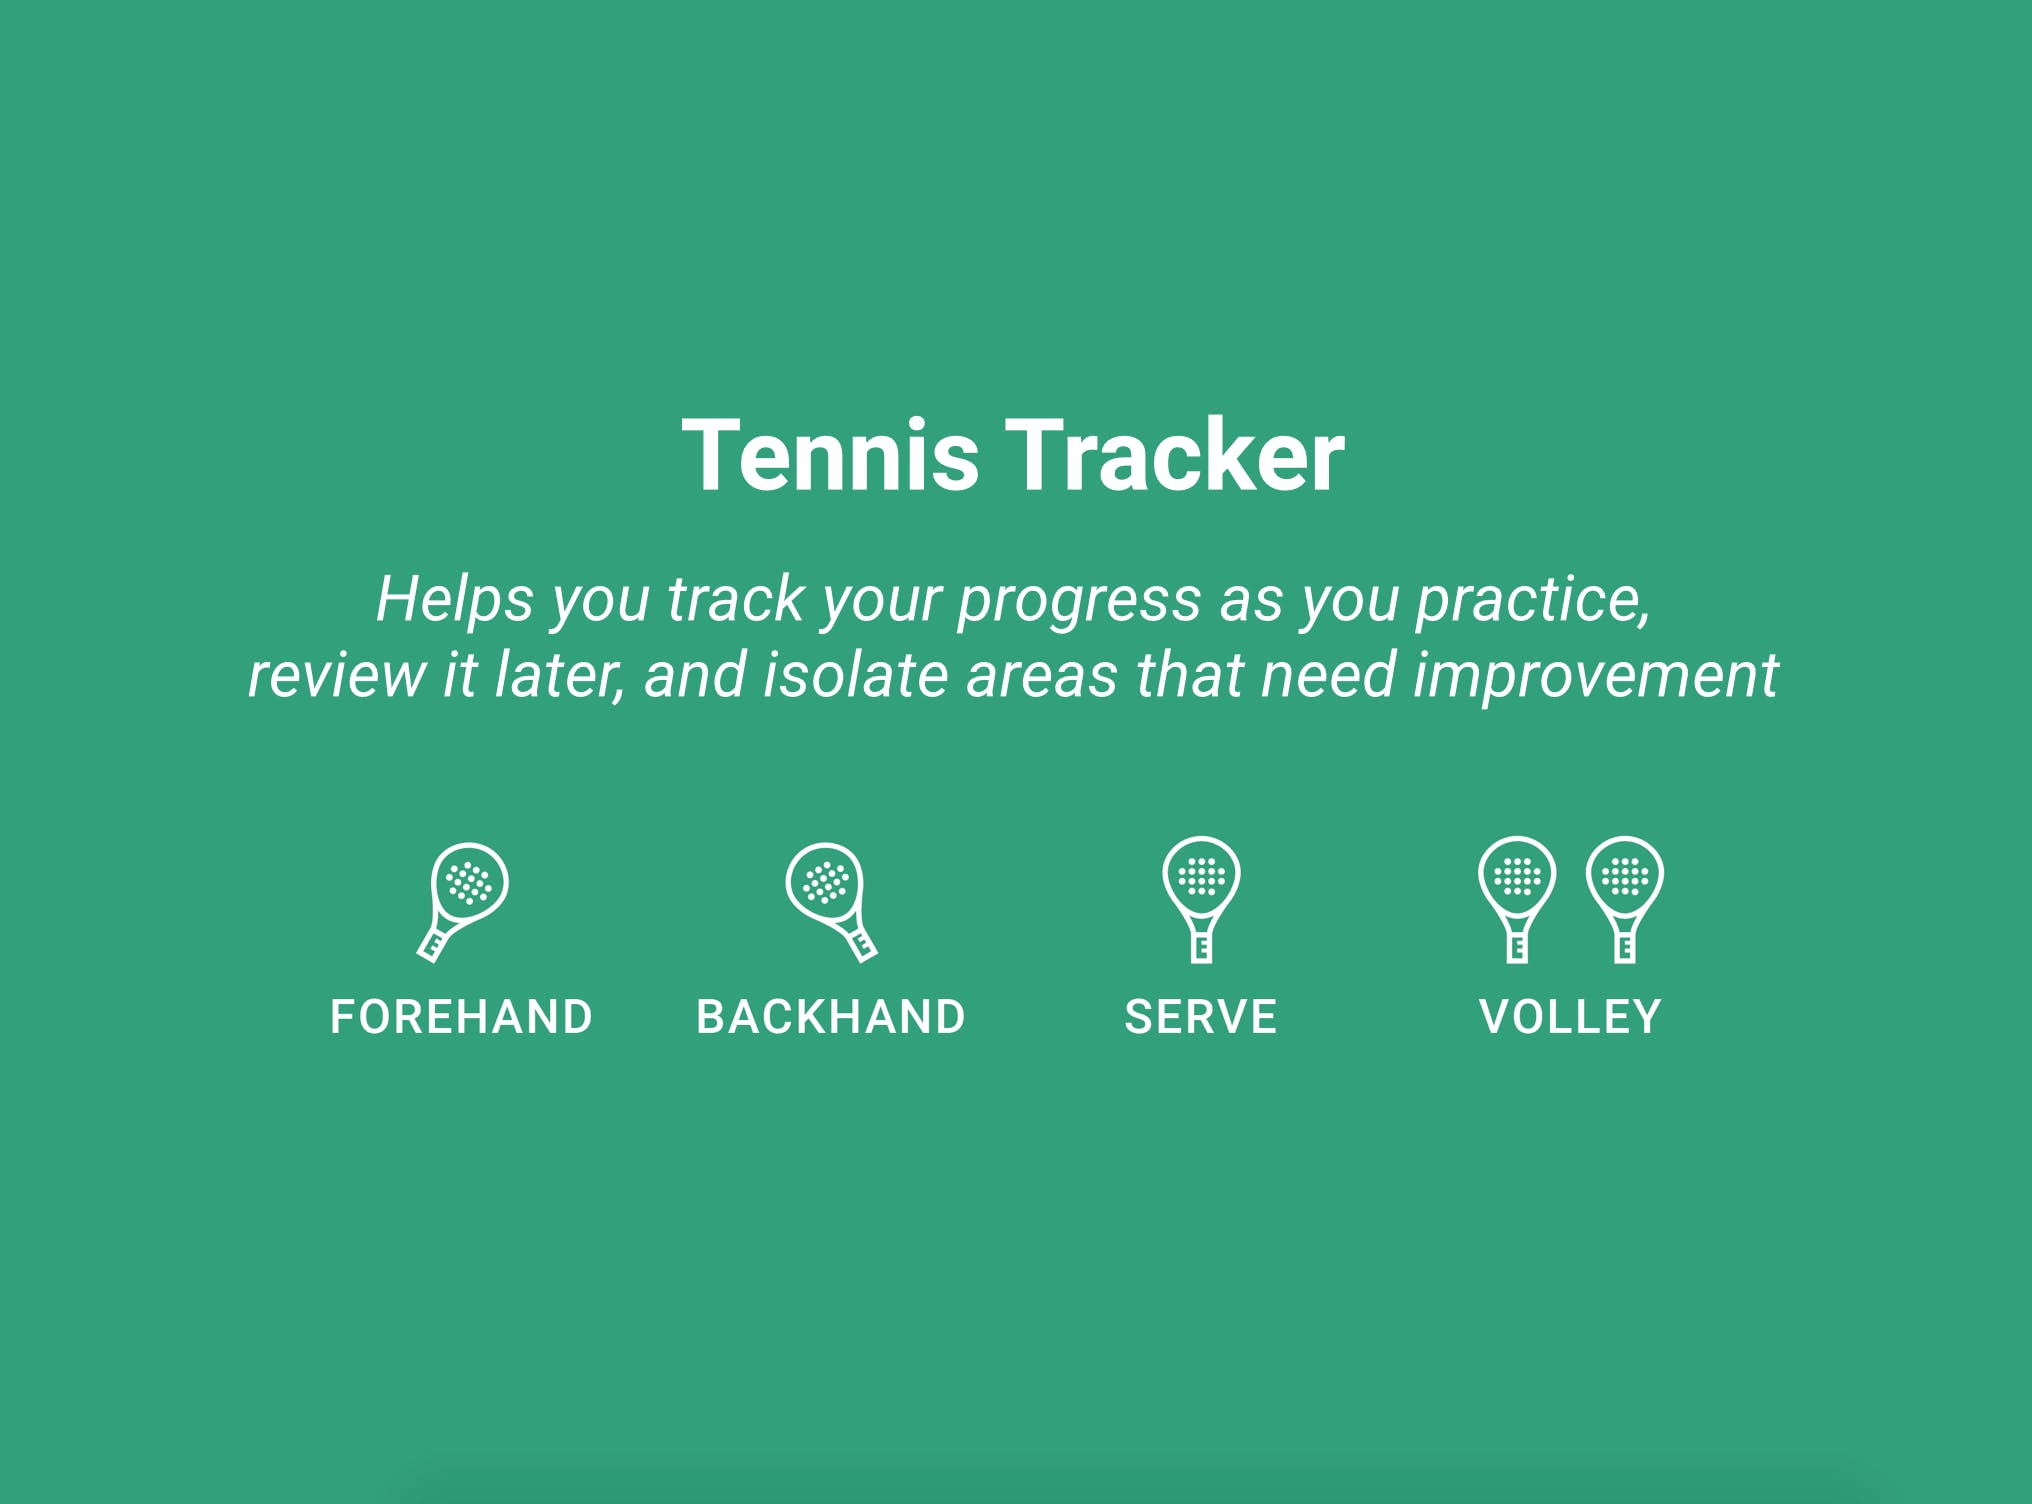 Tennis Tracker (Final Report)